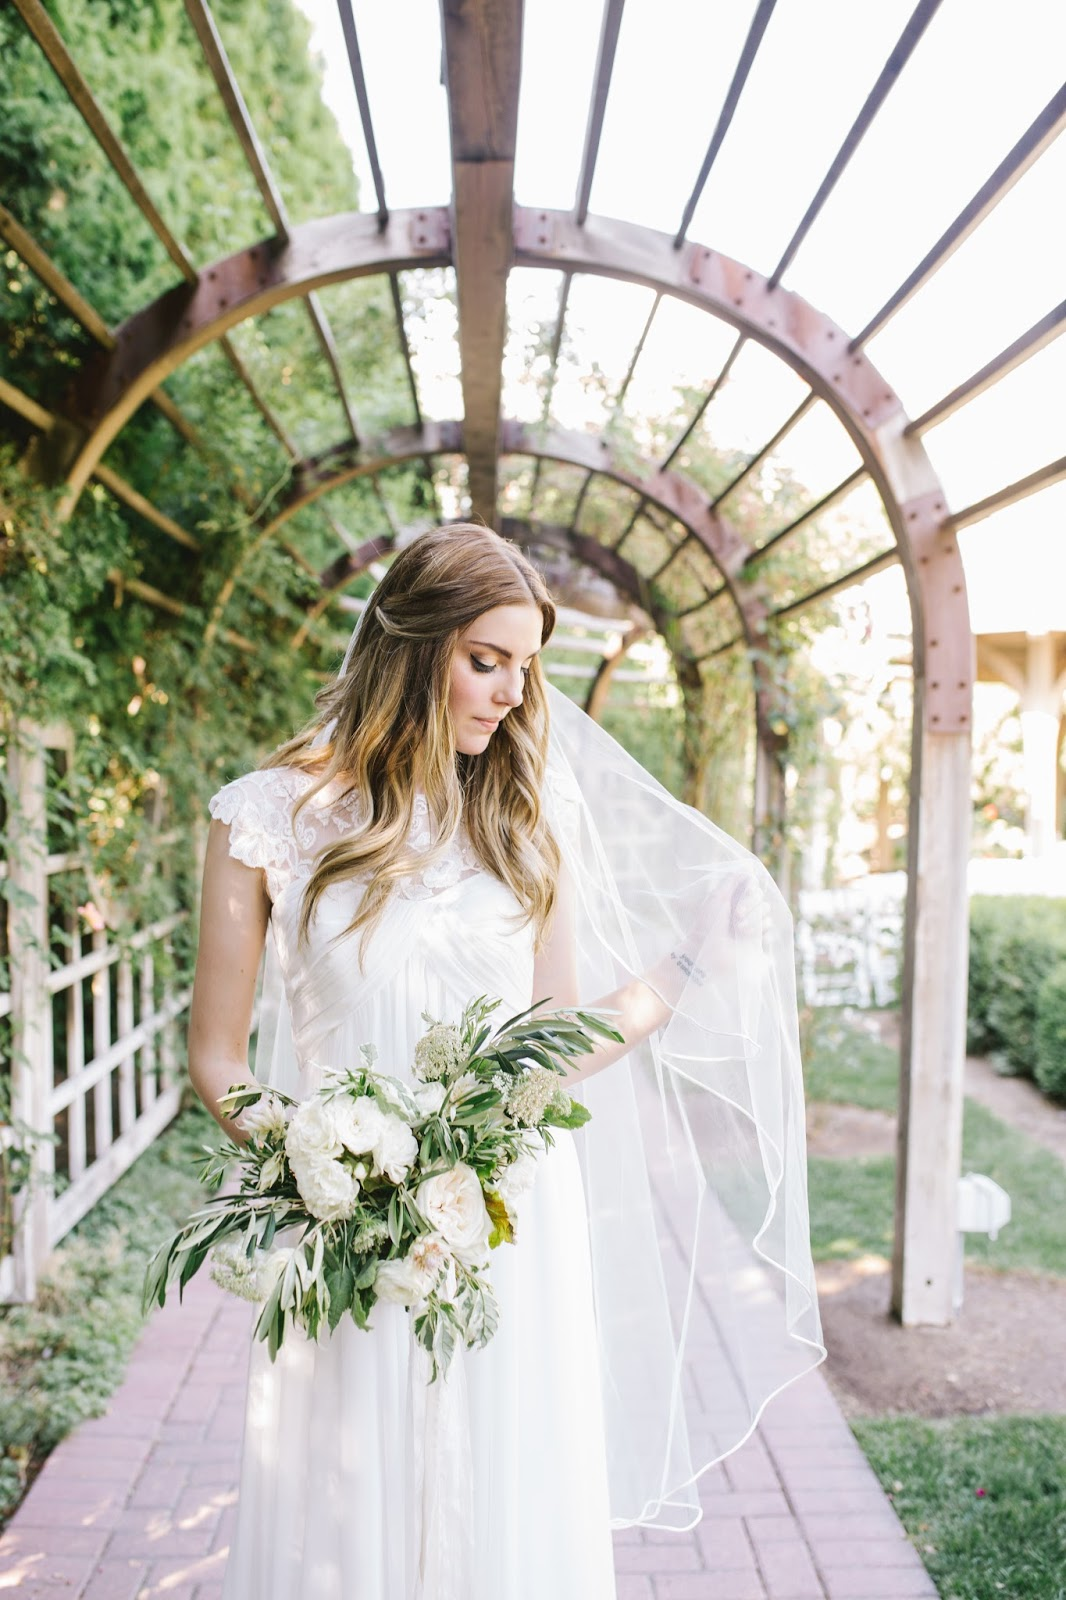 The dress garden utah - Classic Bride In A Lace Dress With A White Garden Rose And Olive Bouquet For Her